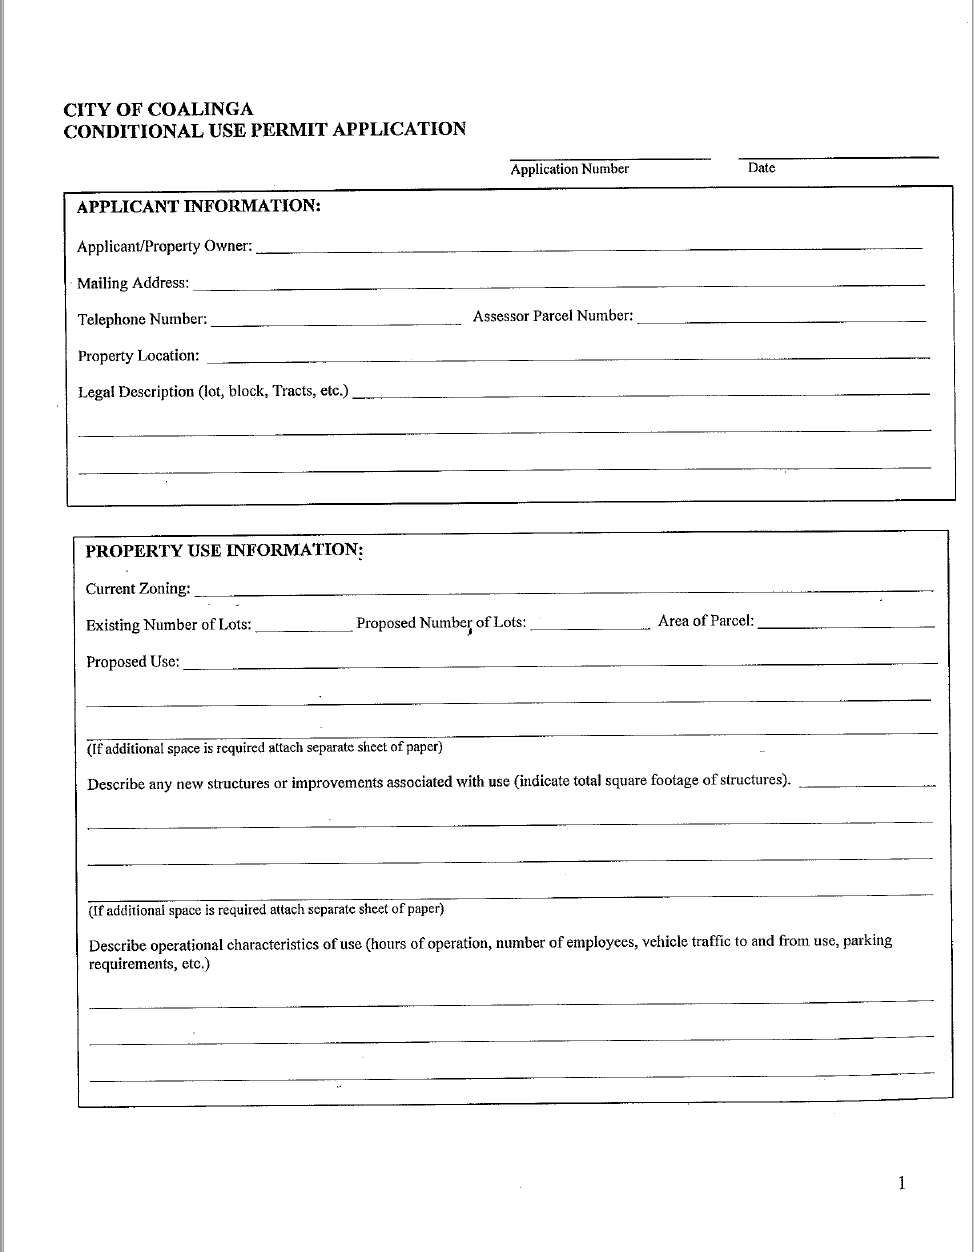 Conditional Use Permit.png